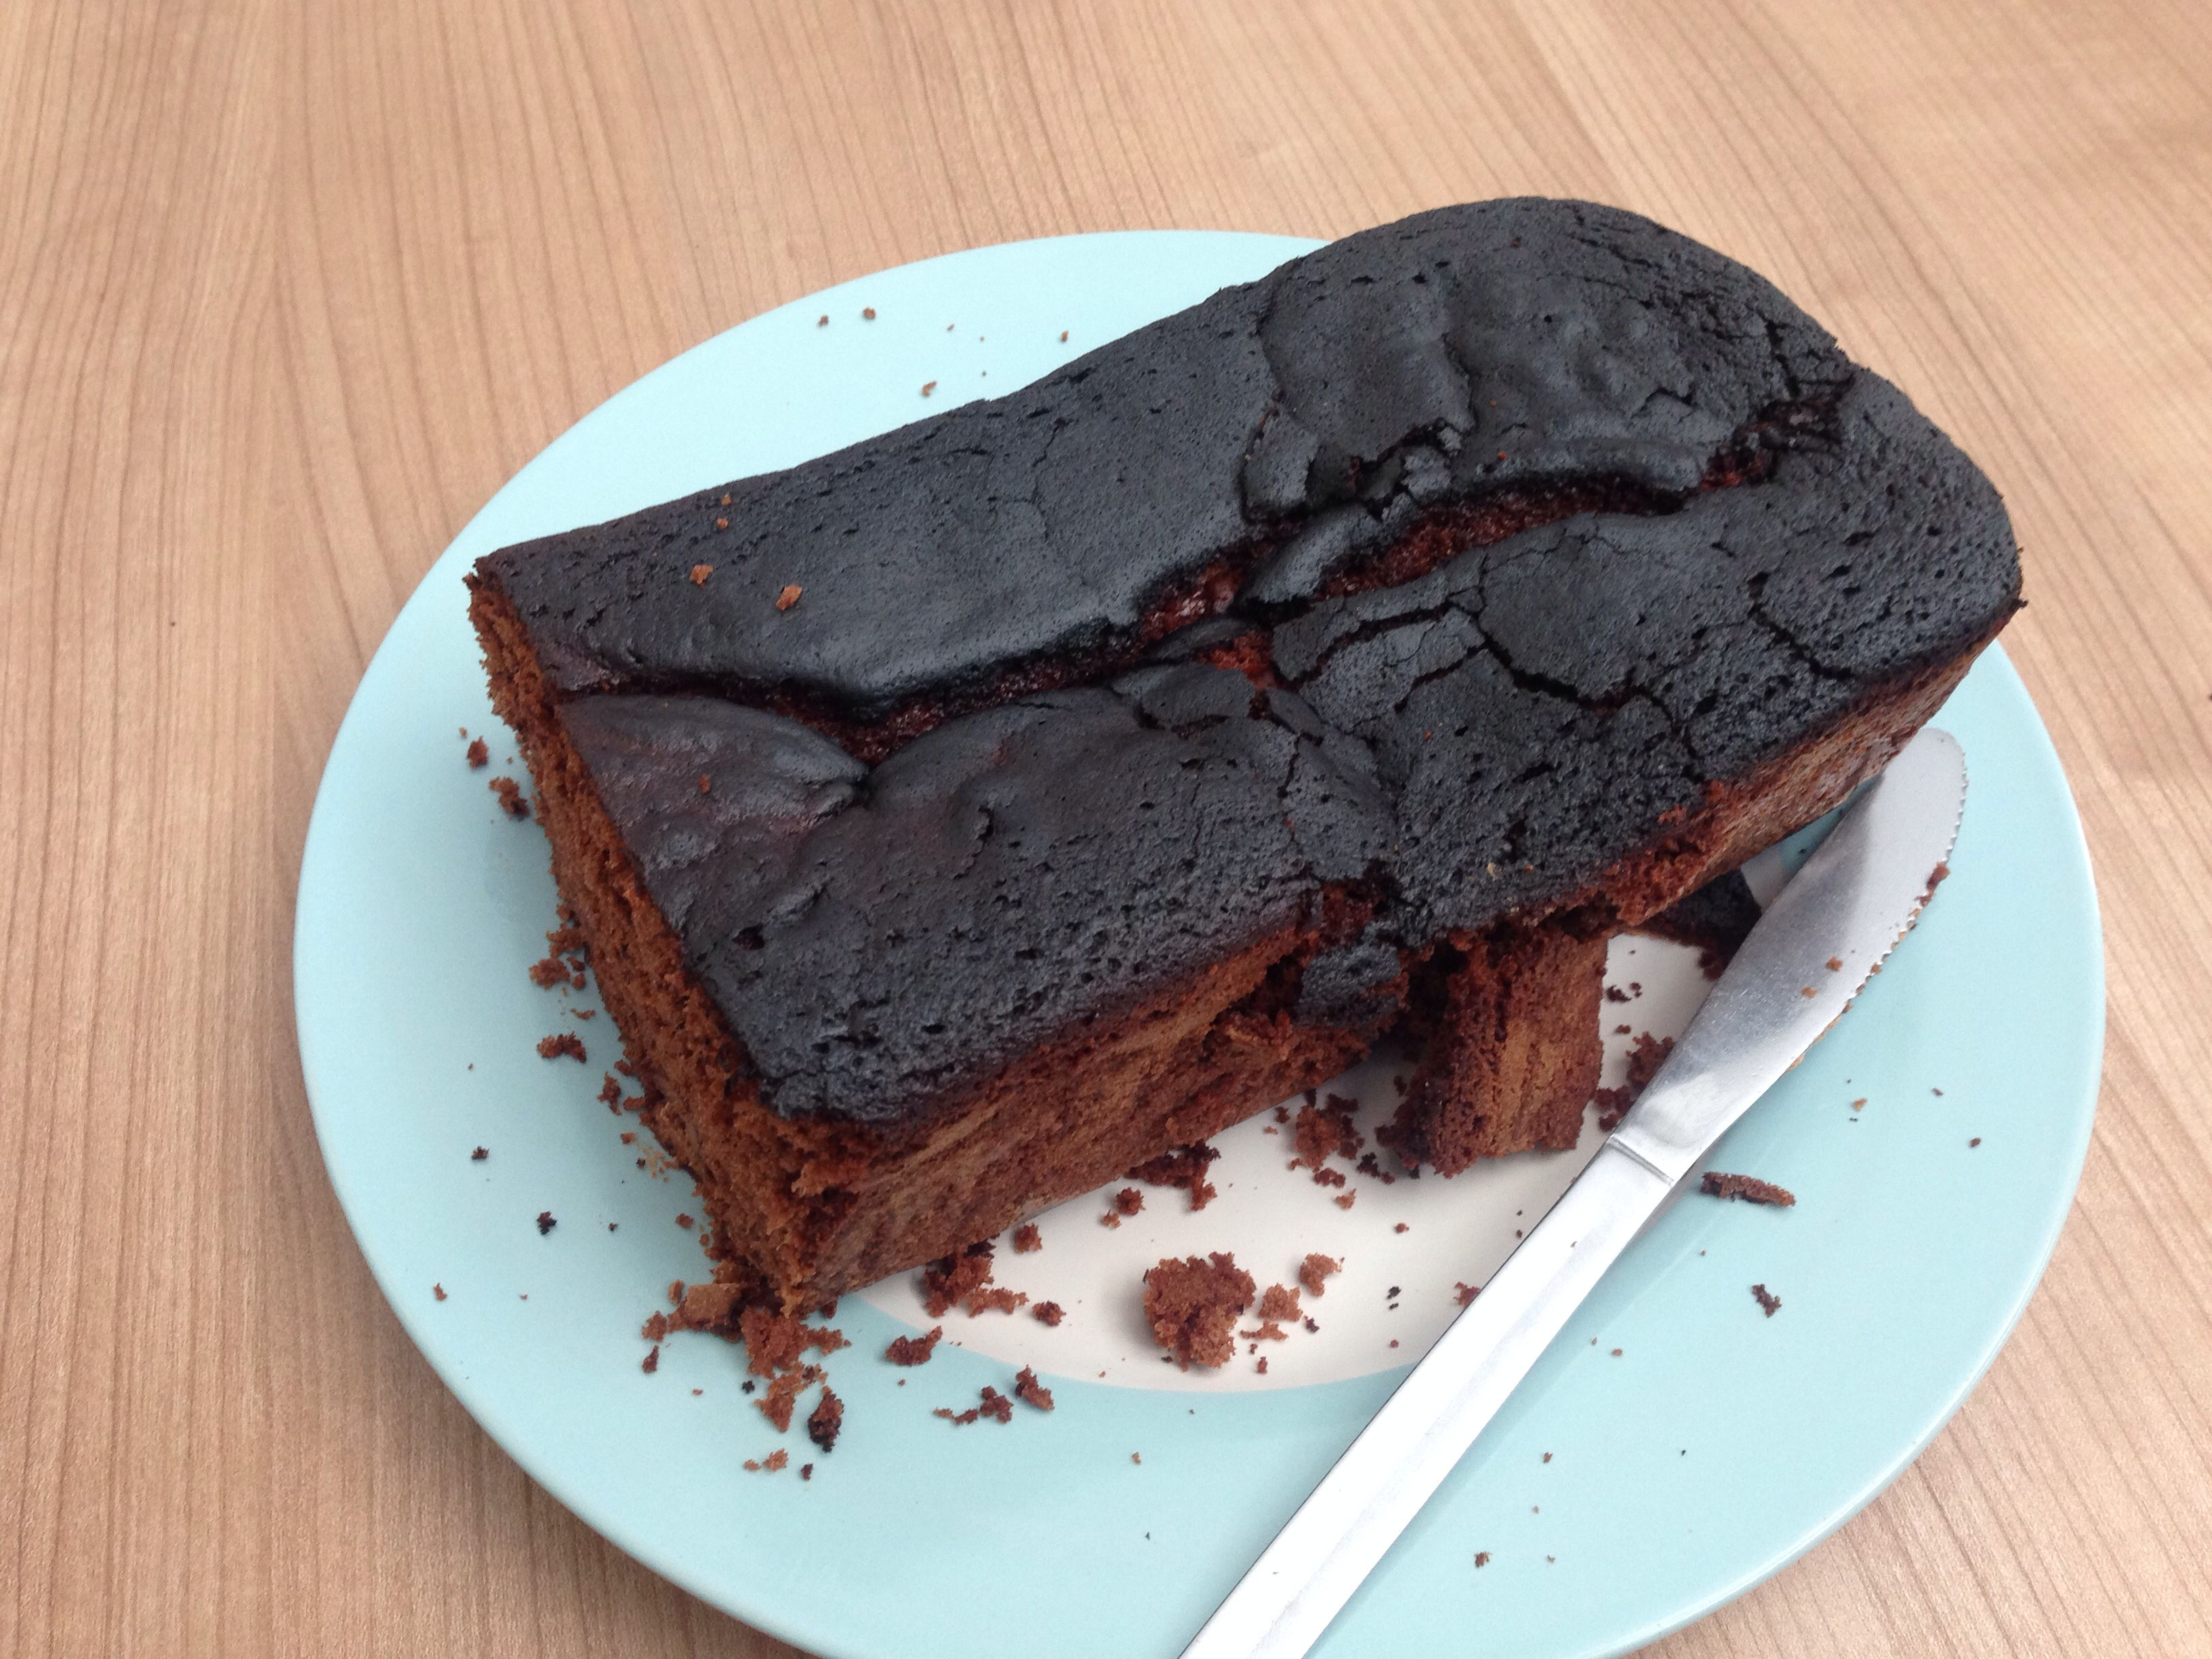 Homemade Chocolate loaf cake, burnt but still tasty: http://www.bbcgoodfood.com/recipes/694633/double-chocolate-loaf-cake